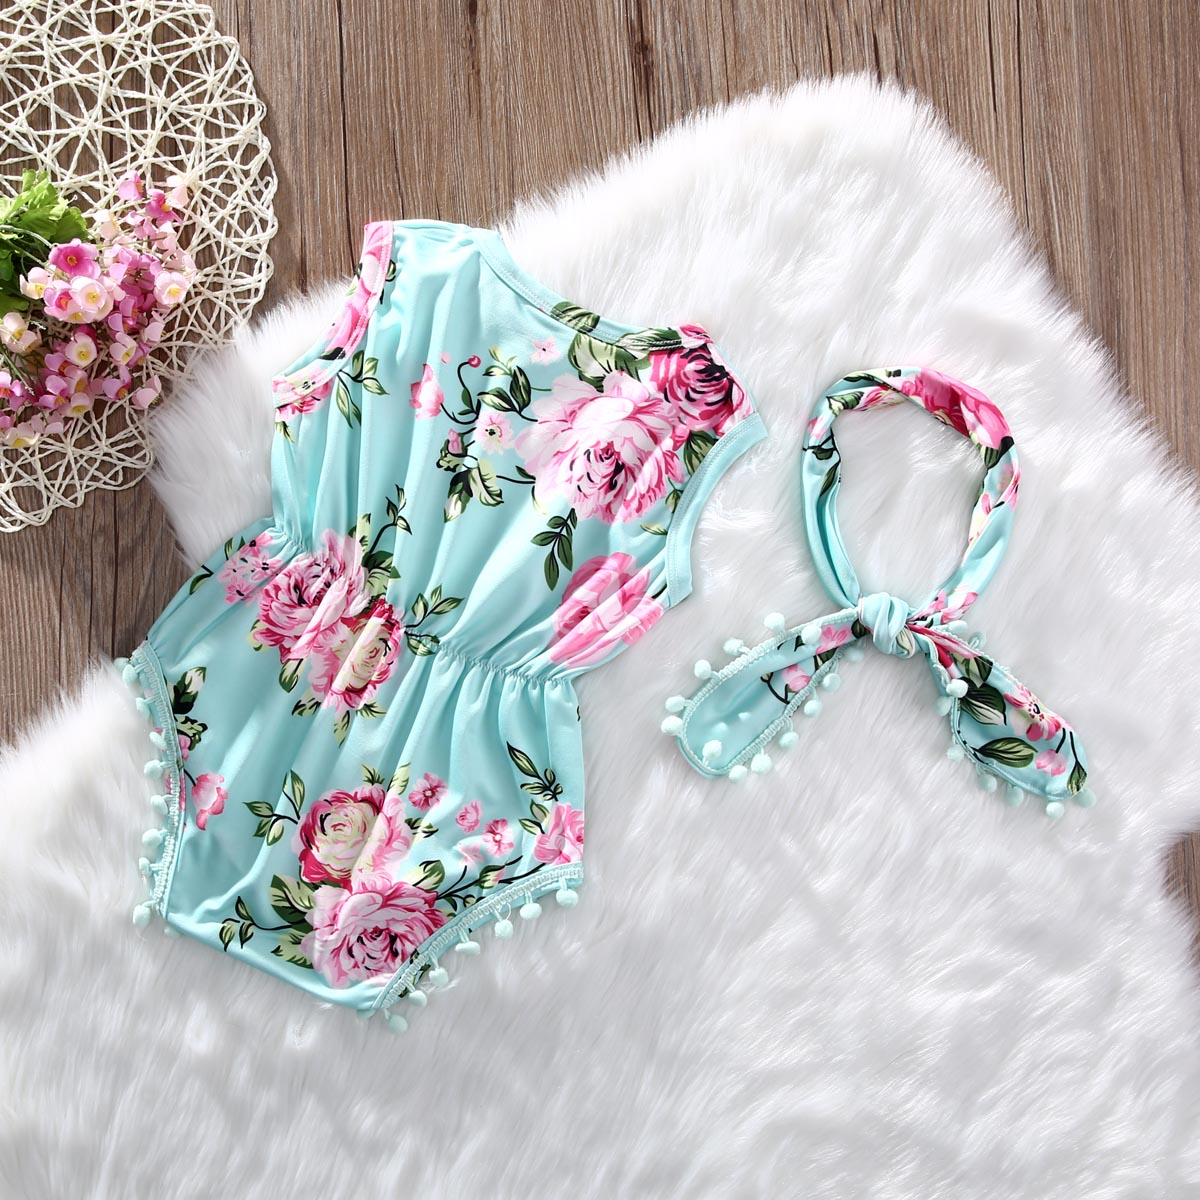 bdb3b2db0f9a2 US $3.48 |2Pcs/Set Newborn Infant Baby Girl Floral Romper Sleeveless Tassel  Jumpsuit +Headband Sunsuit Outfits Clothes-in Rompers from Mother & Kids ...